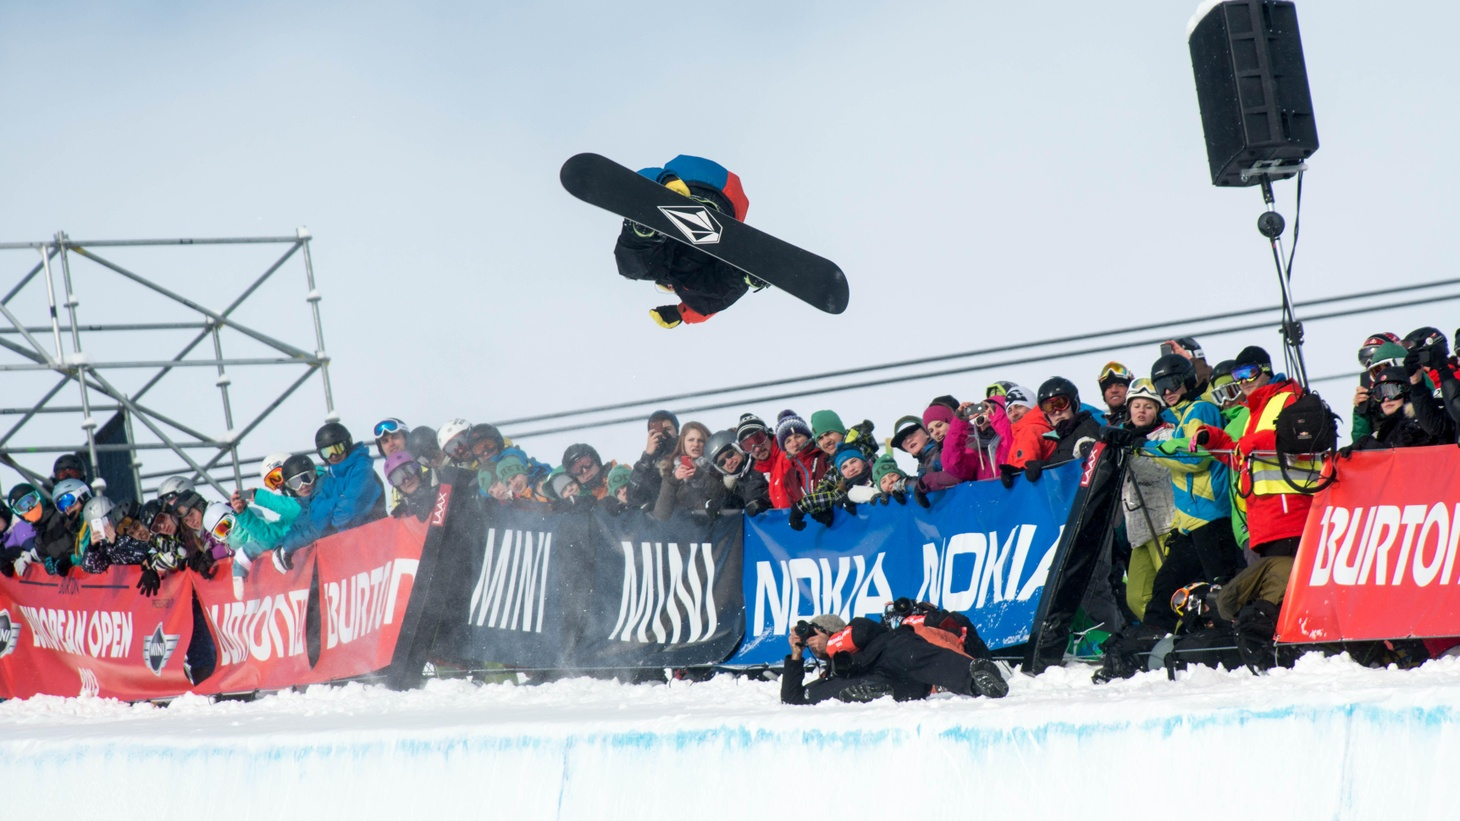 Snowboarding in Sochi brings an Olympic update, mutts are allowed in the Westminster Kennel Club Dog Show, and the latest in television news.